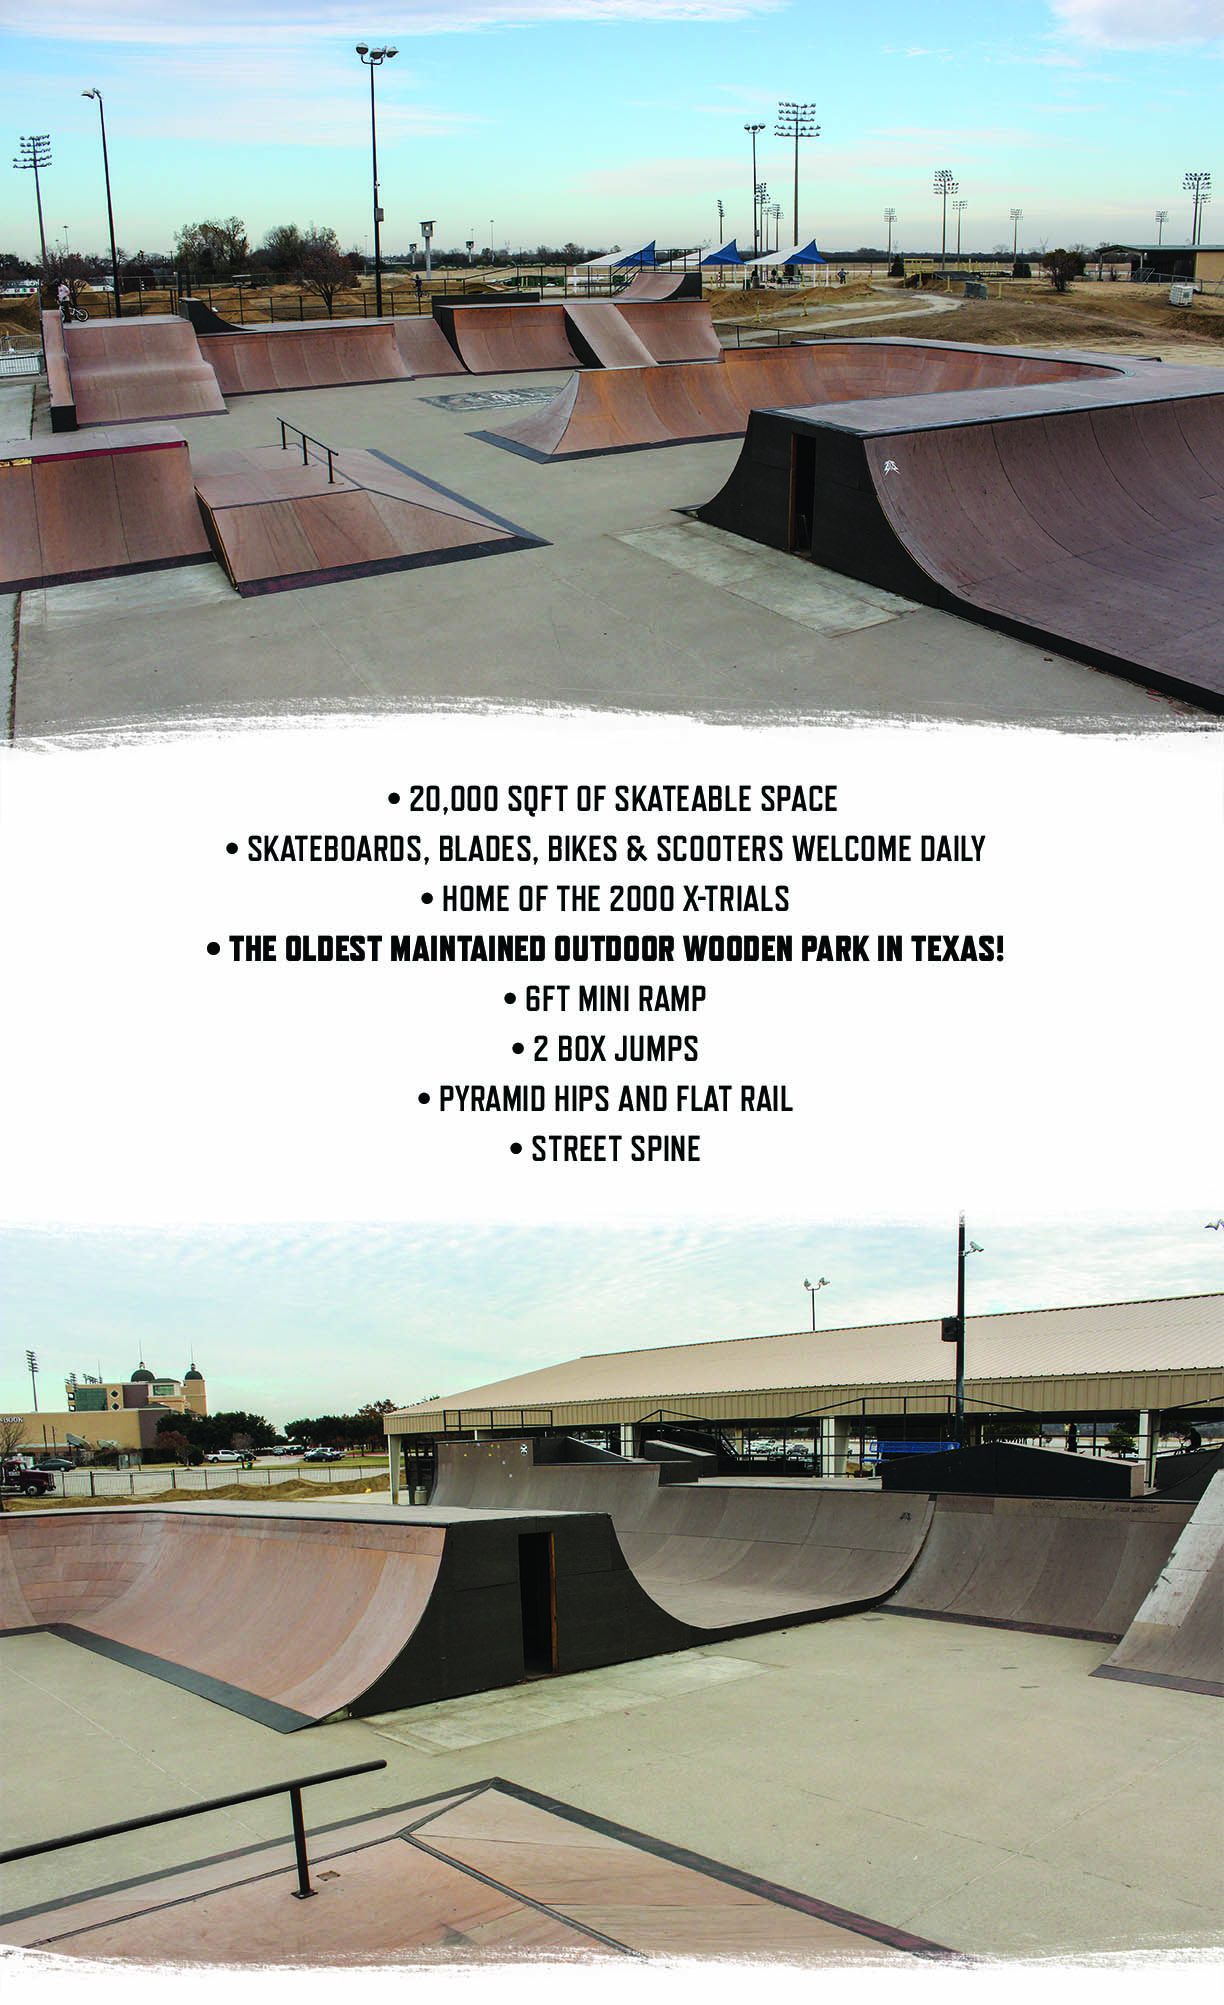 Skate park, DFW, North Texas, Skate board, Skate boarding, Skate, bike, aggressive skating, skating